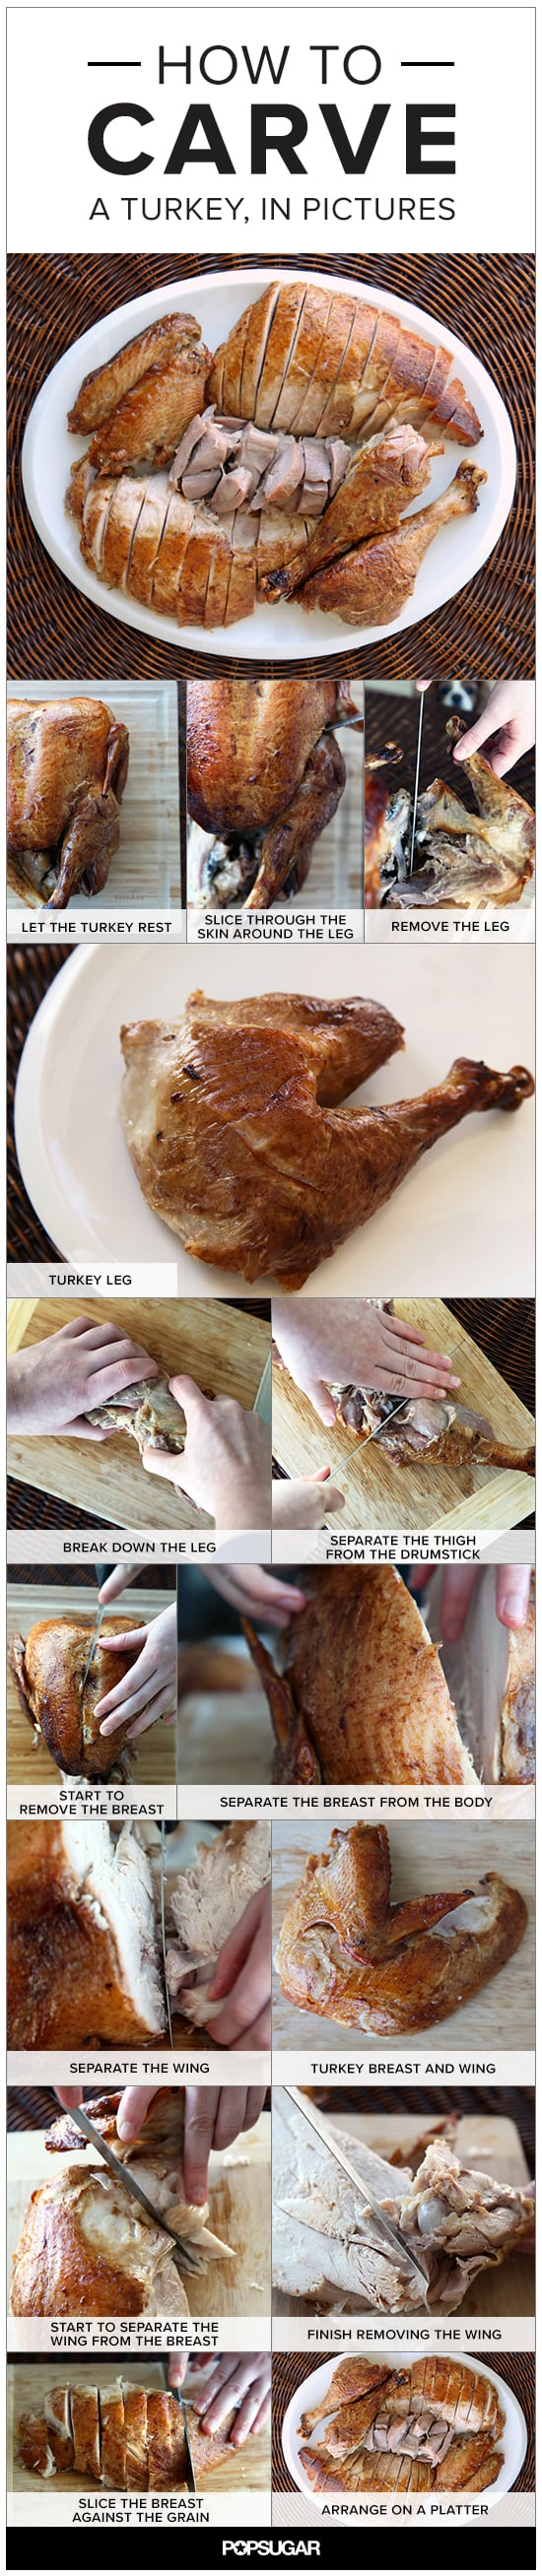 How to Carve a Turkey, in Pictures